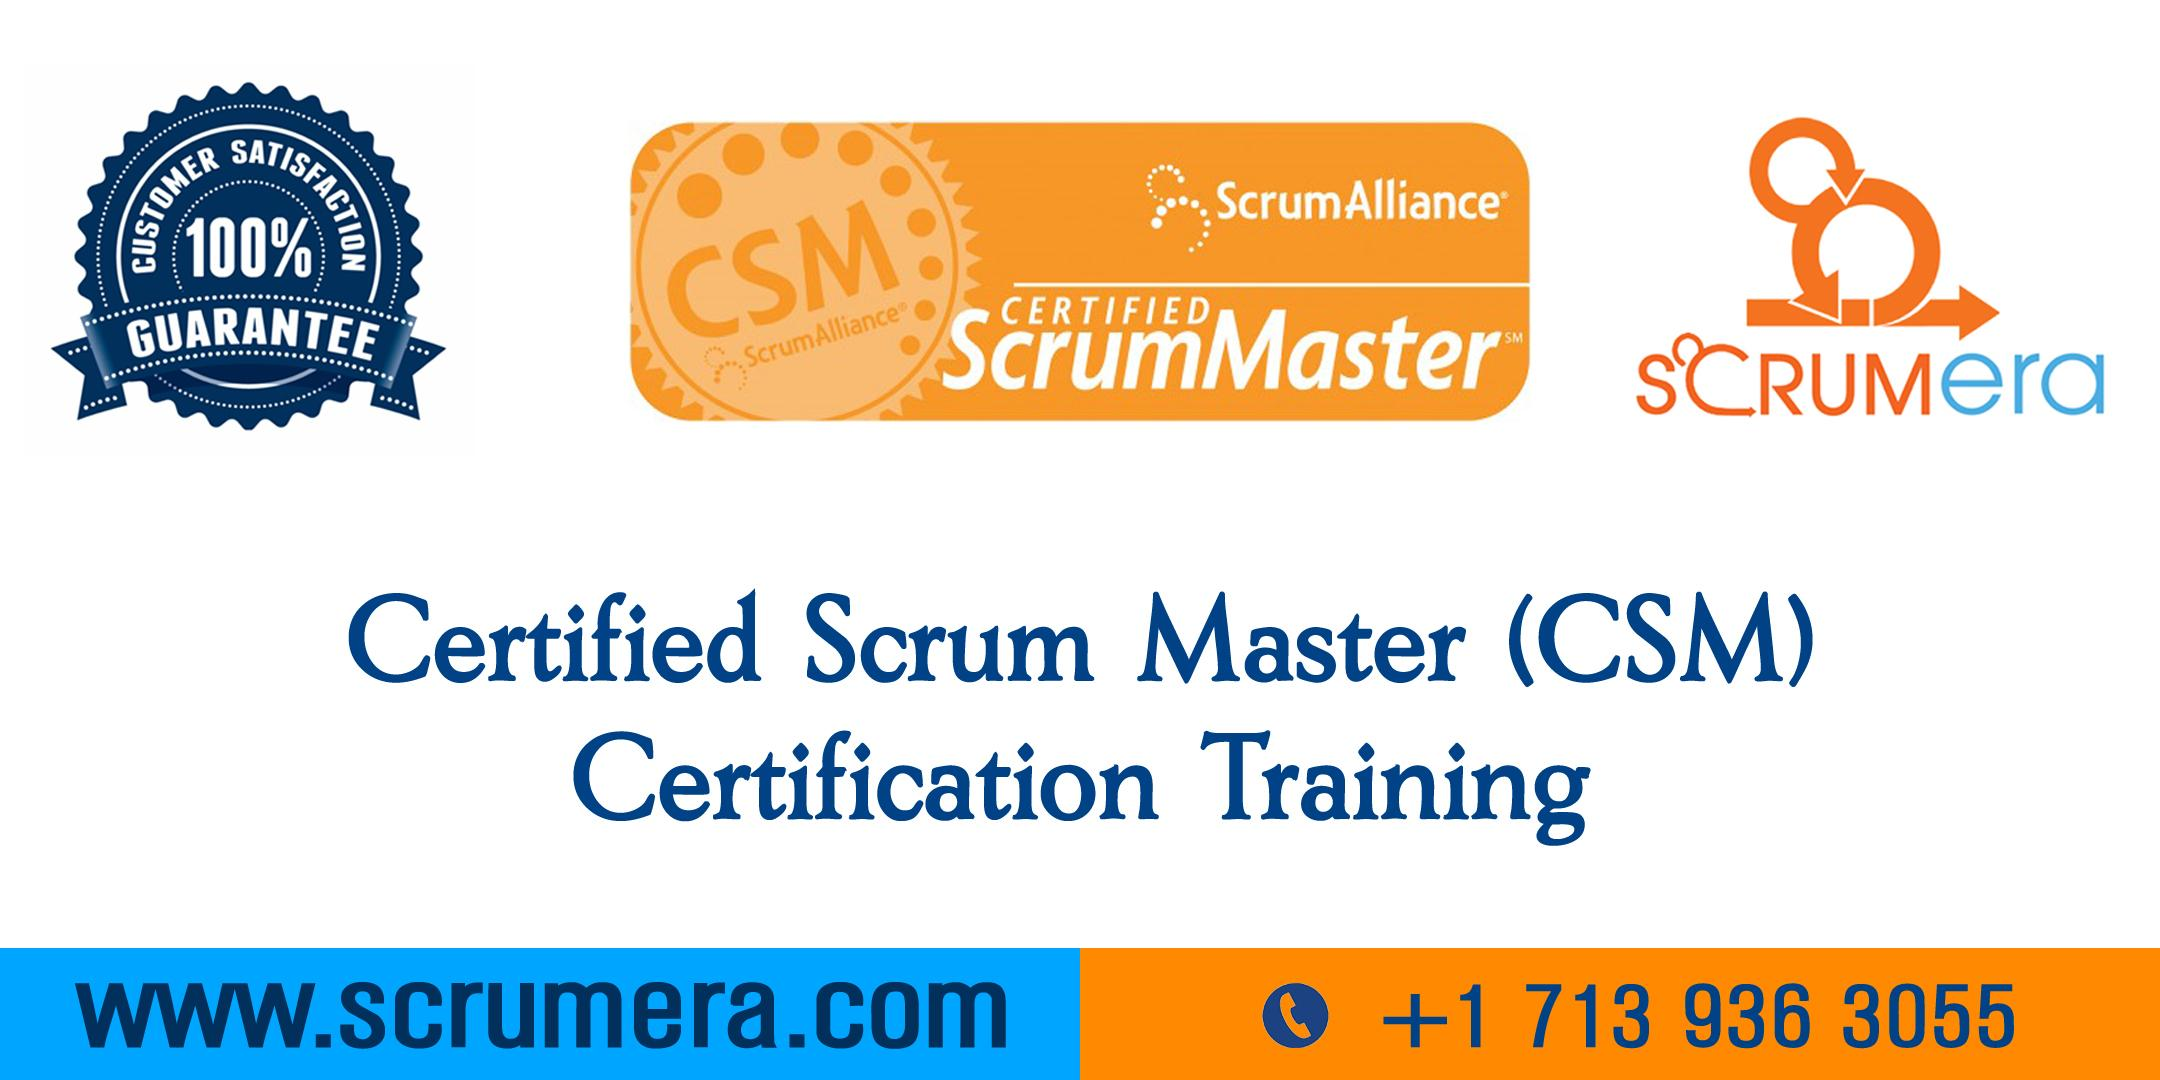 Scrum Master Certification | CSM Training | CSM Certification Workshop | Certified Scrum Master (CSM) Training in Washington, DC | ScrumERA